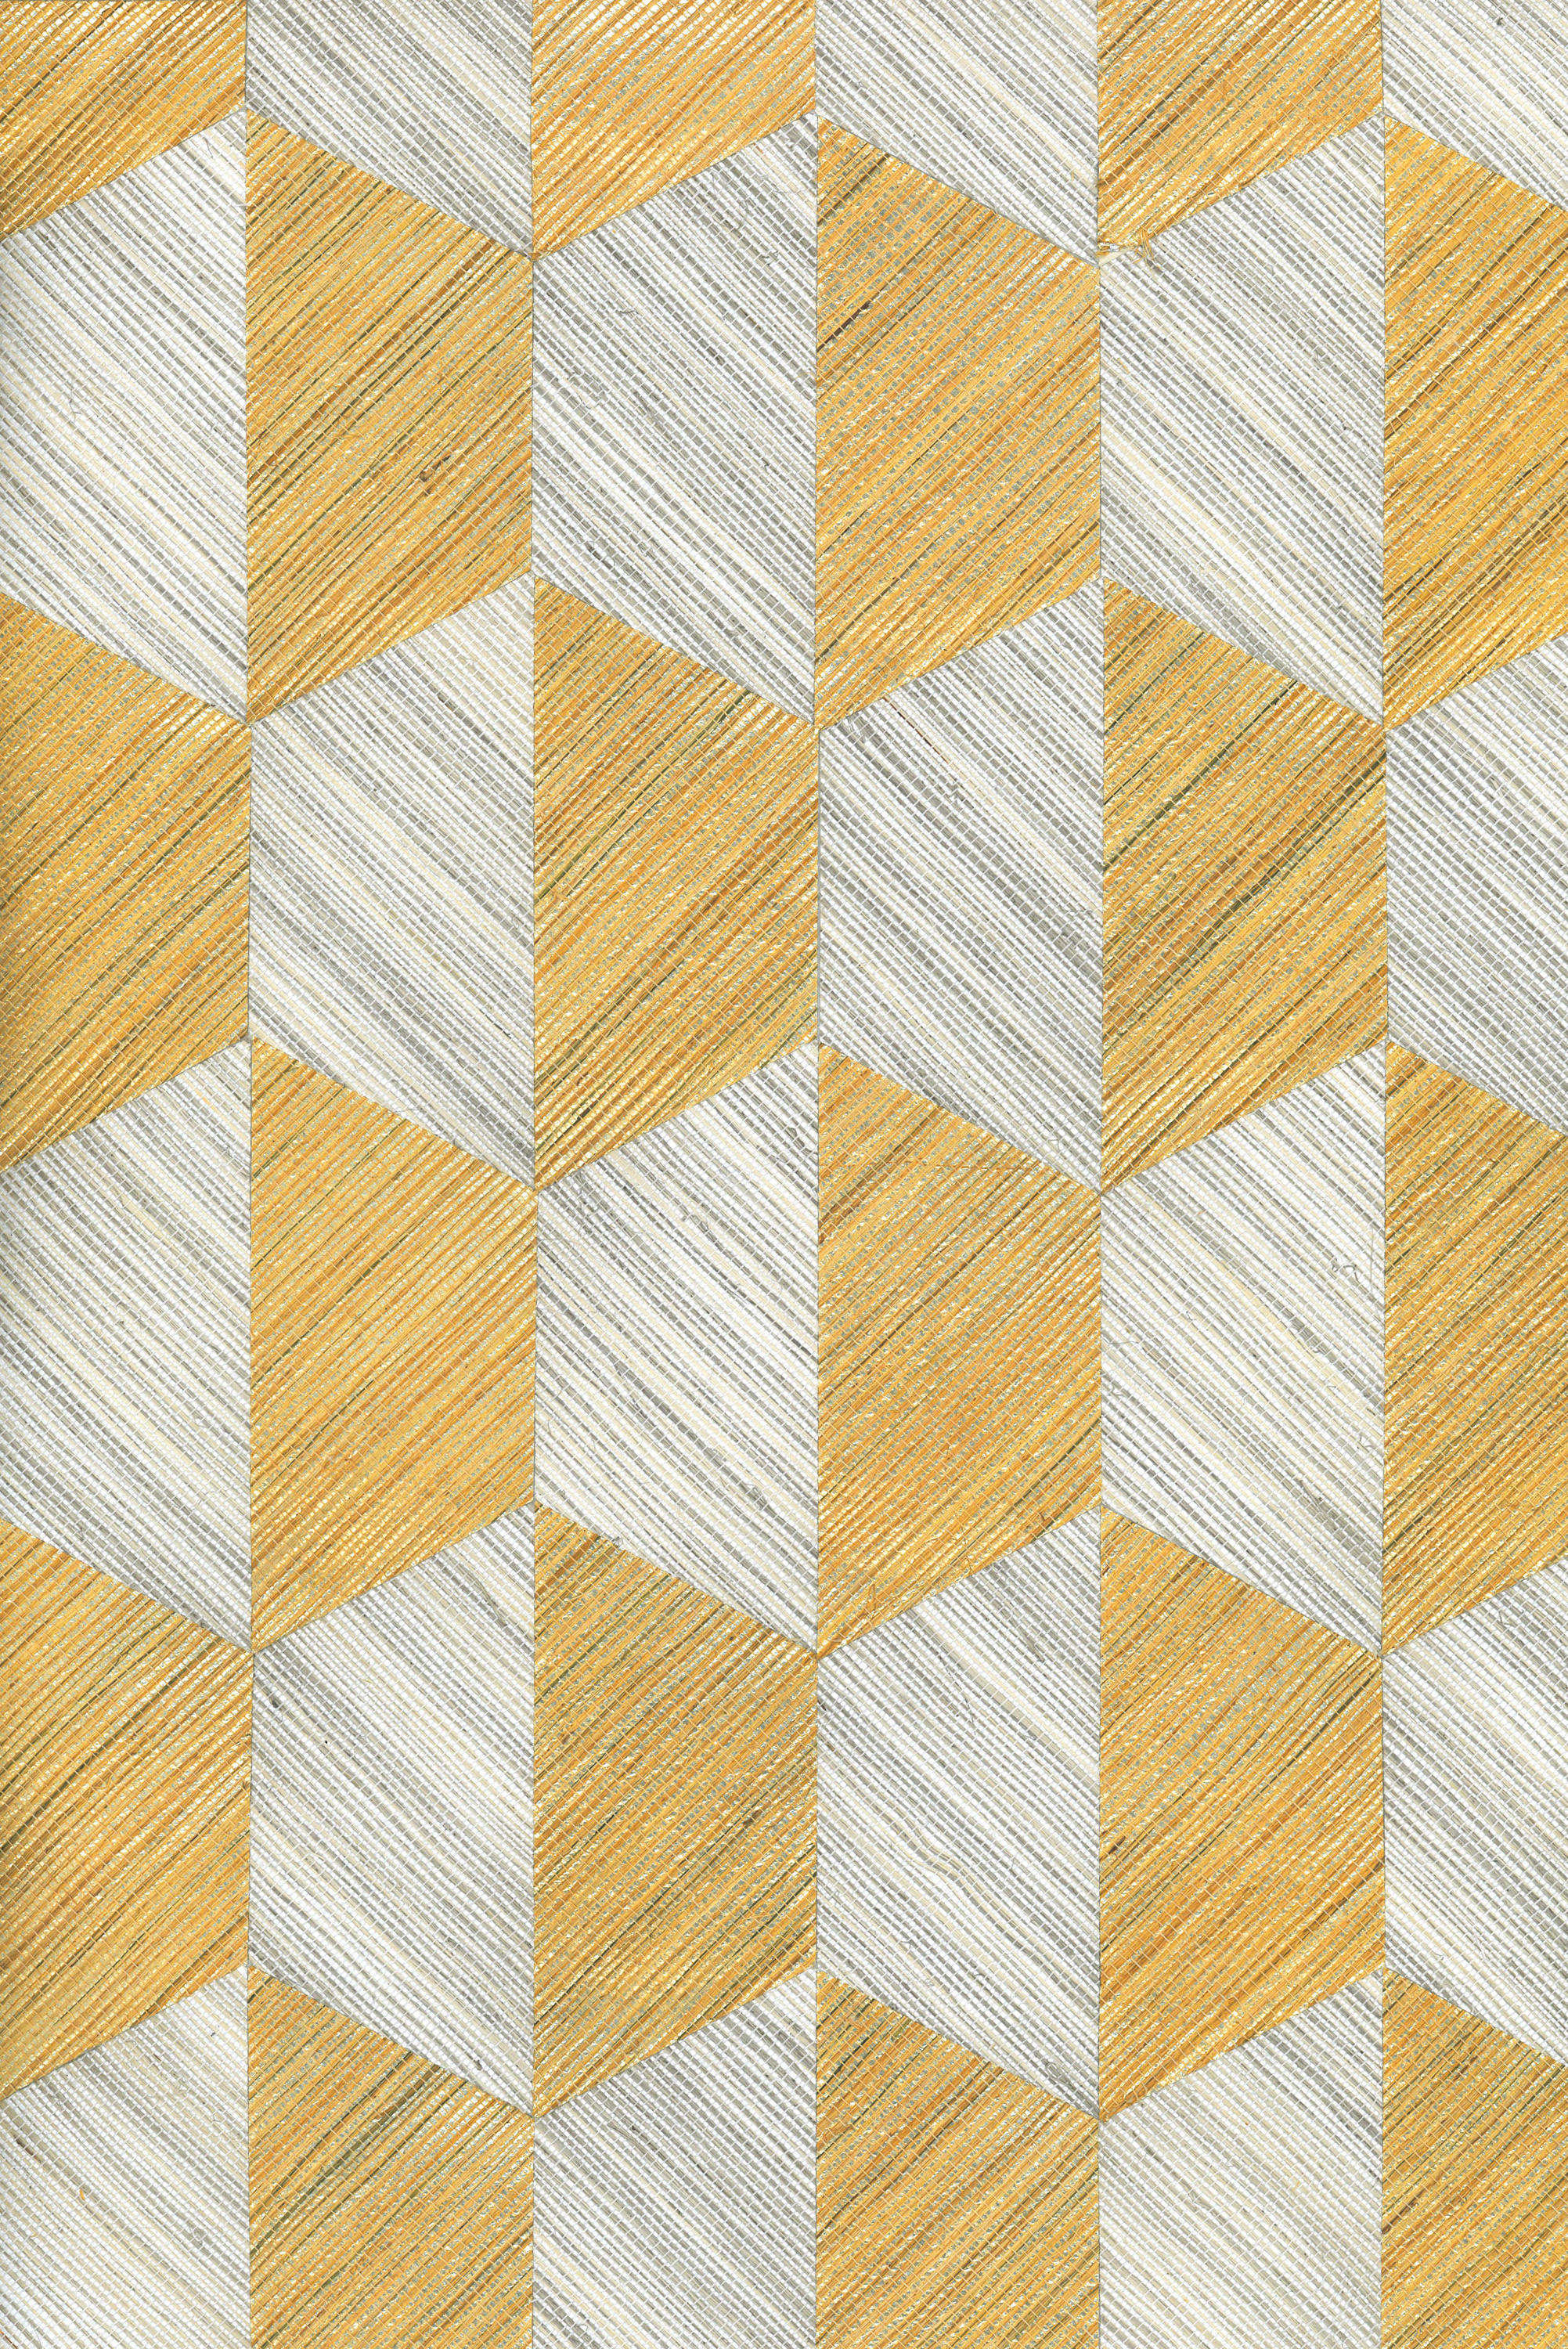 OCULAIRE INSIGNIA - Wall coverings / wallpapers from Arte | Architonic